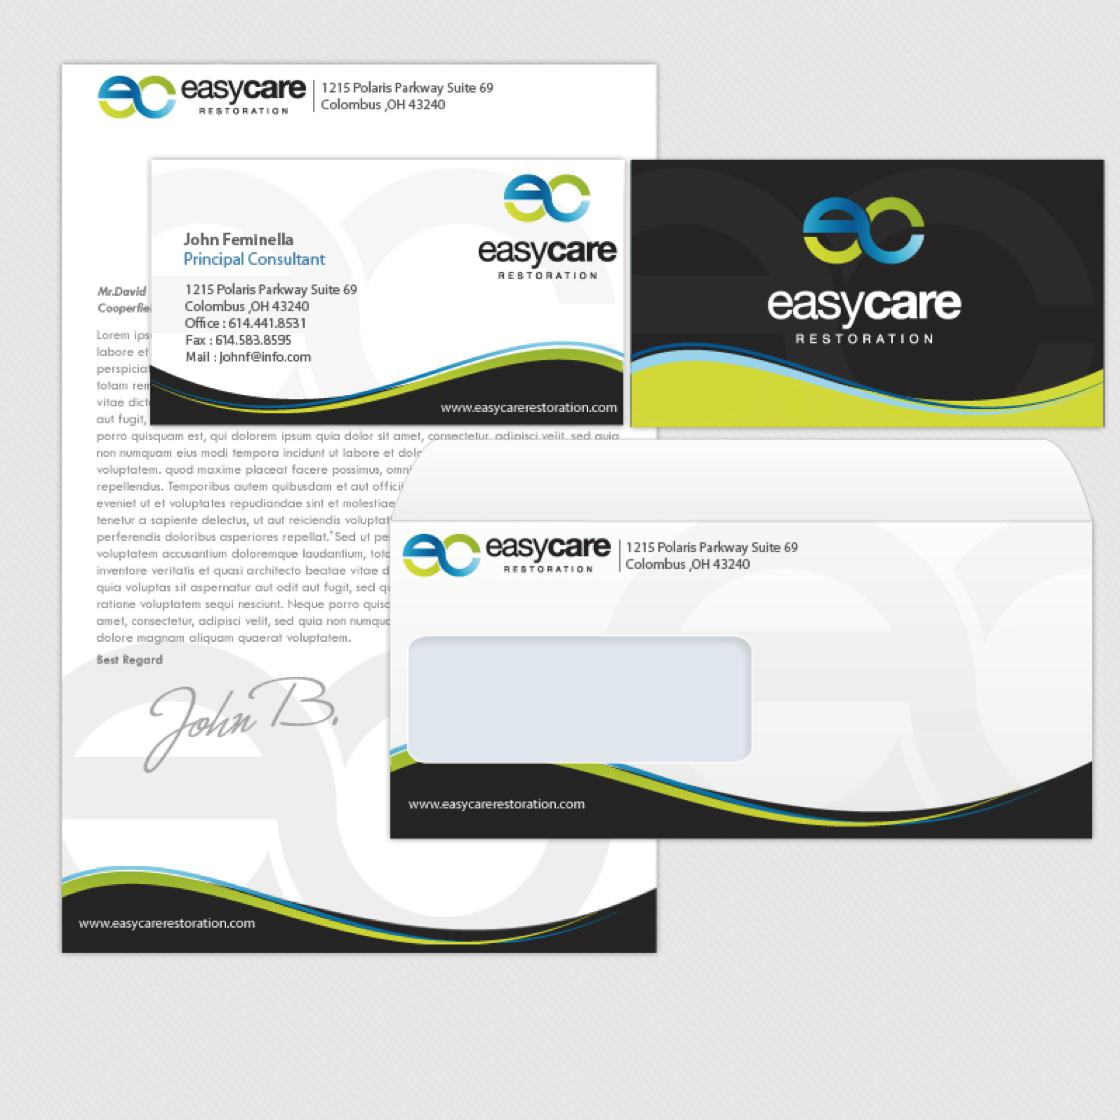 letterhead and stationery designed by smashing_bug